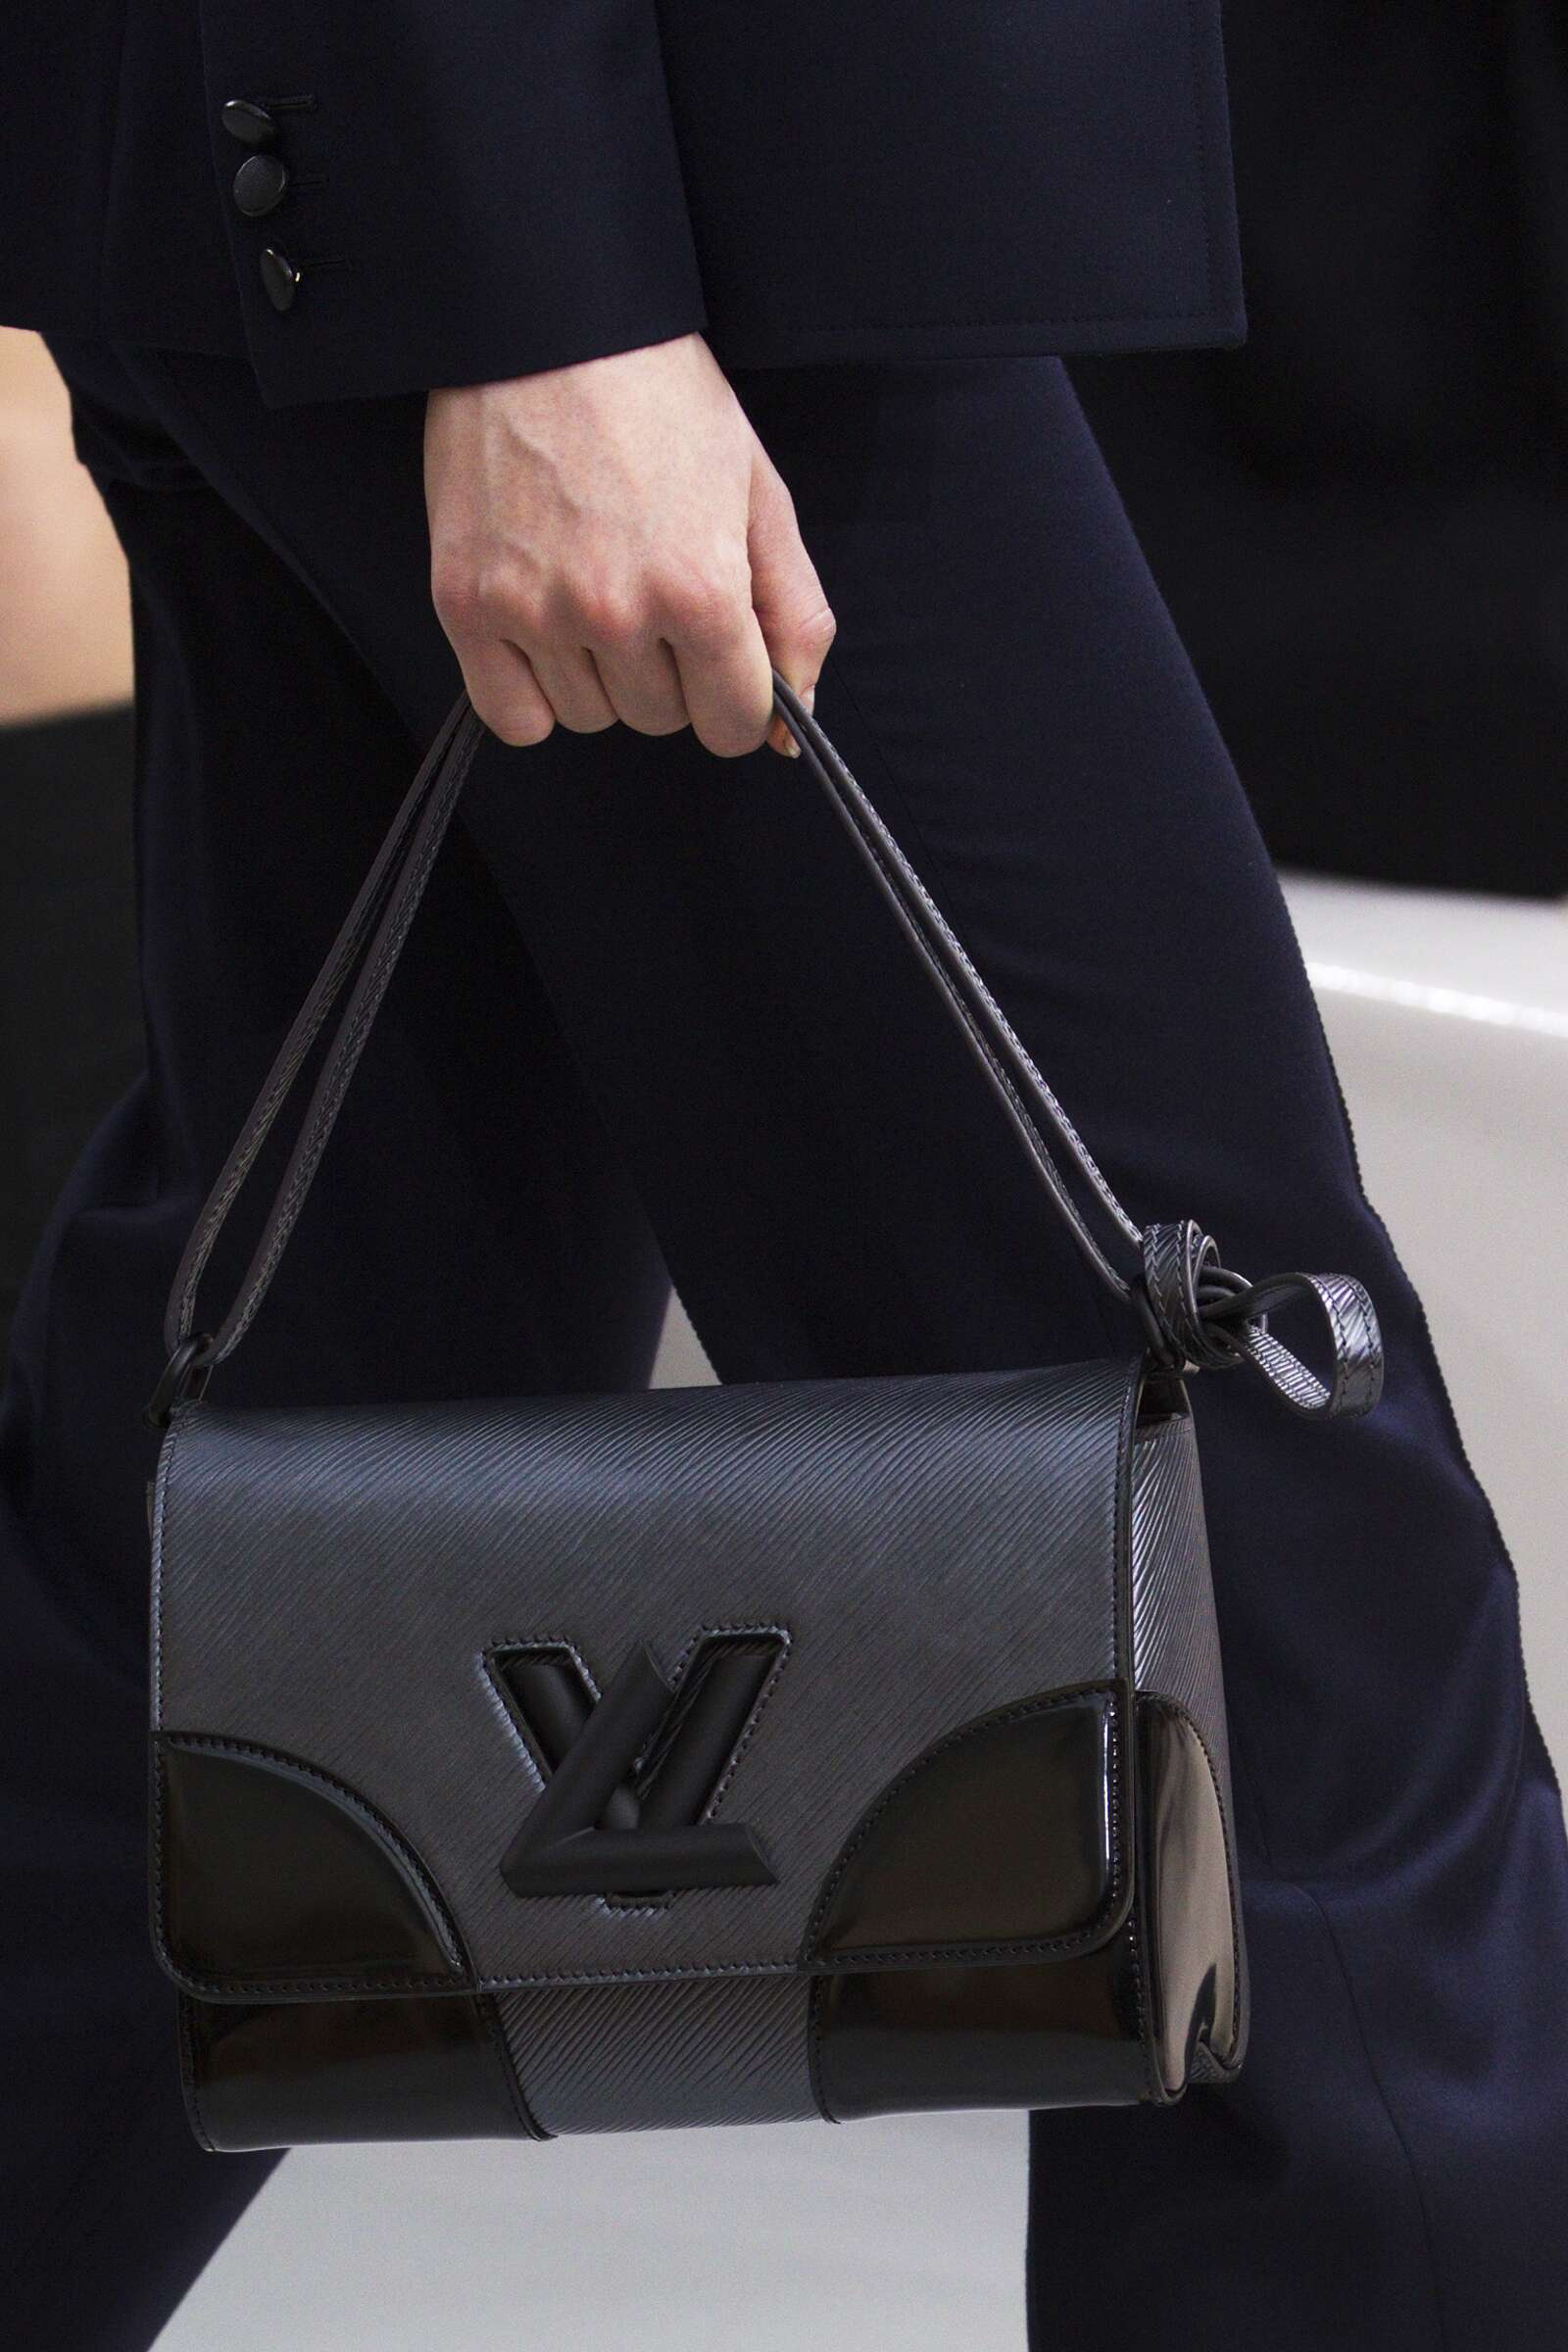 2015 16 Louis Vuitton Bag Details Fall Winter Womenswear Collection Paris Fashion Week Fashion Show